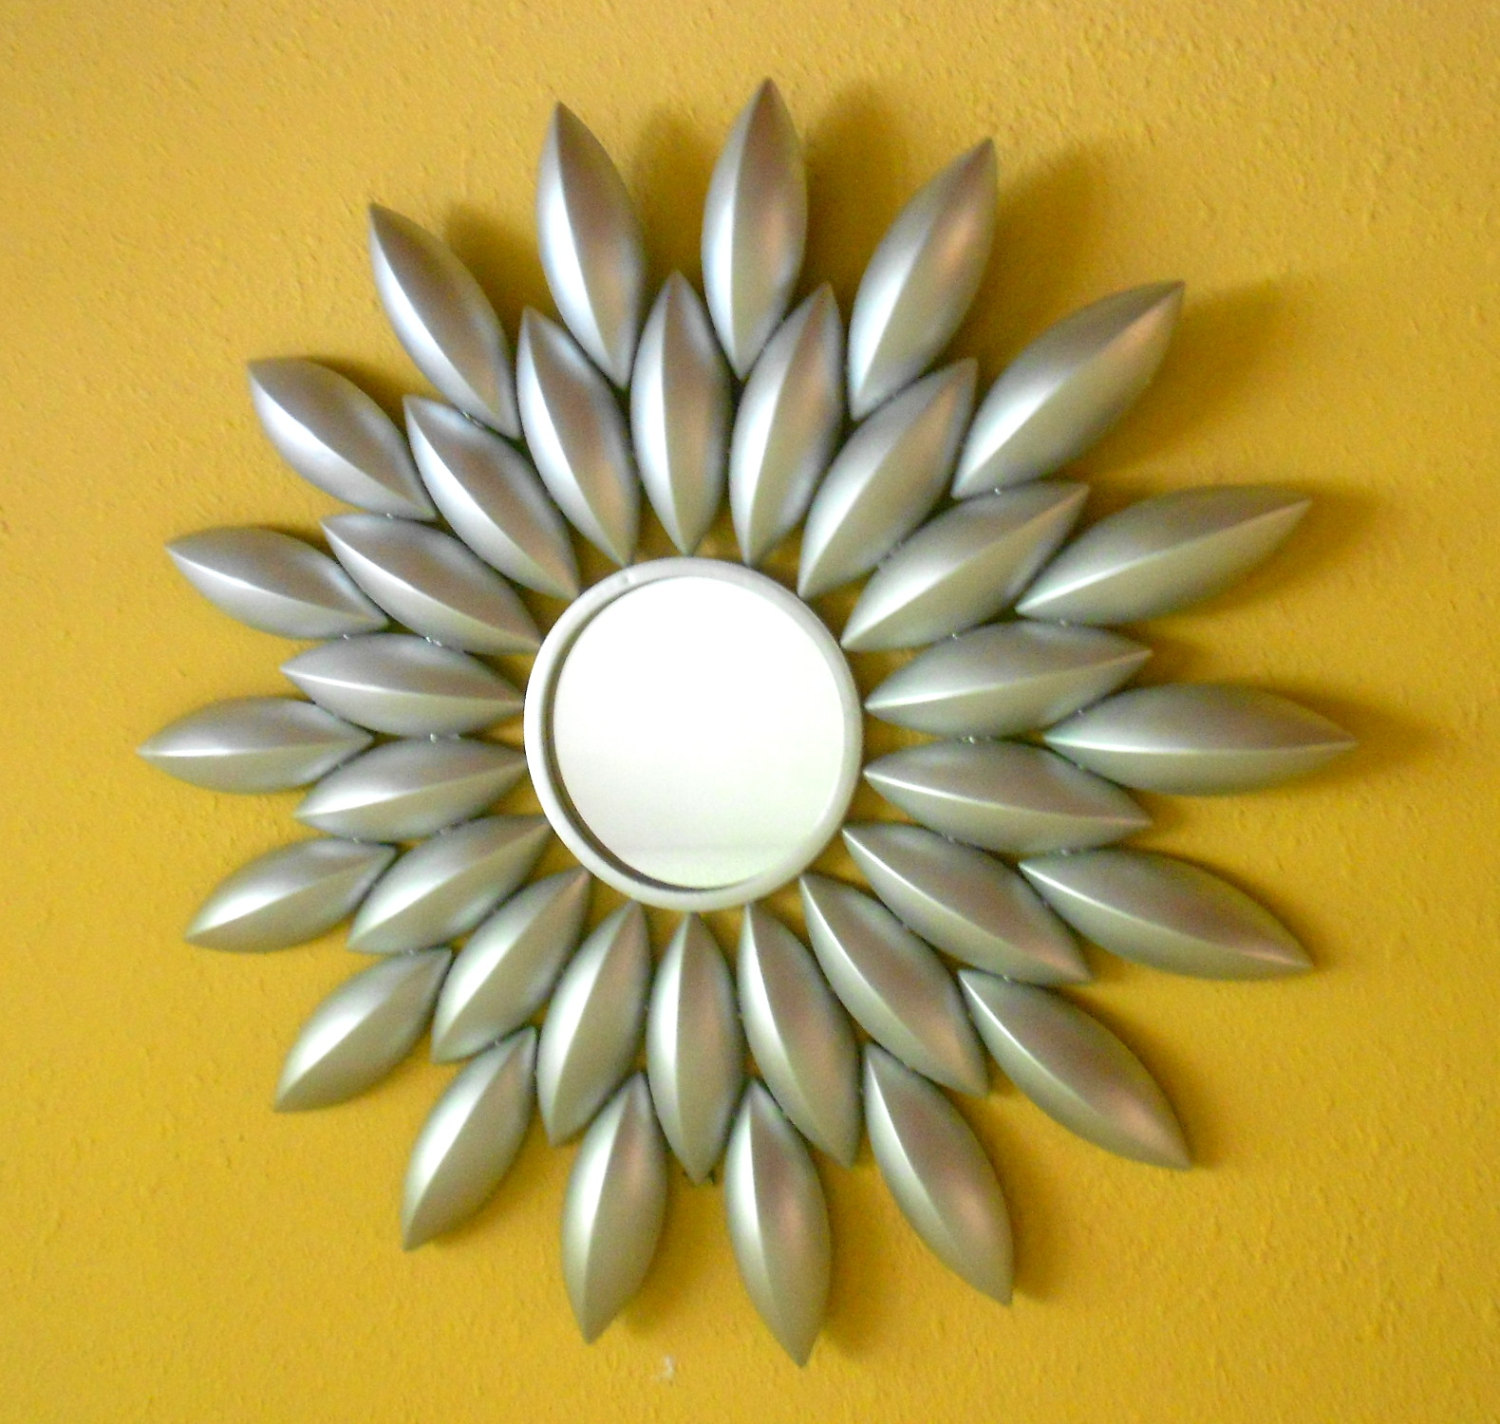 Starburst Mirror | Martha Stewart Sunburst Mirror | Large Sunburst Mirrors